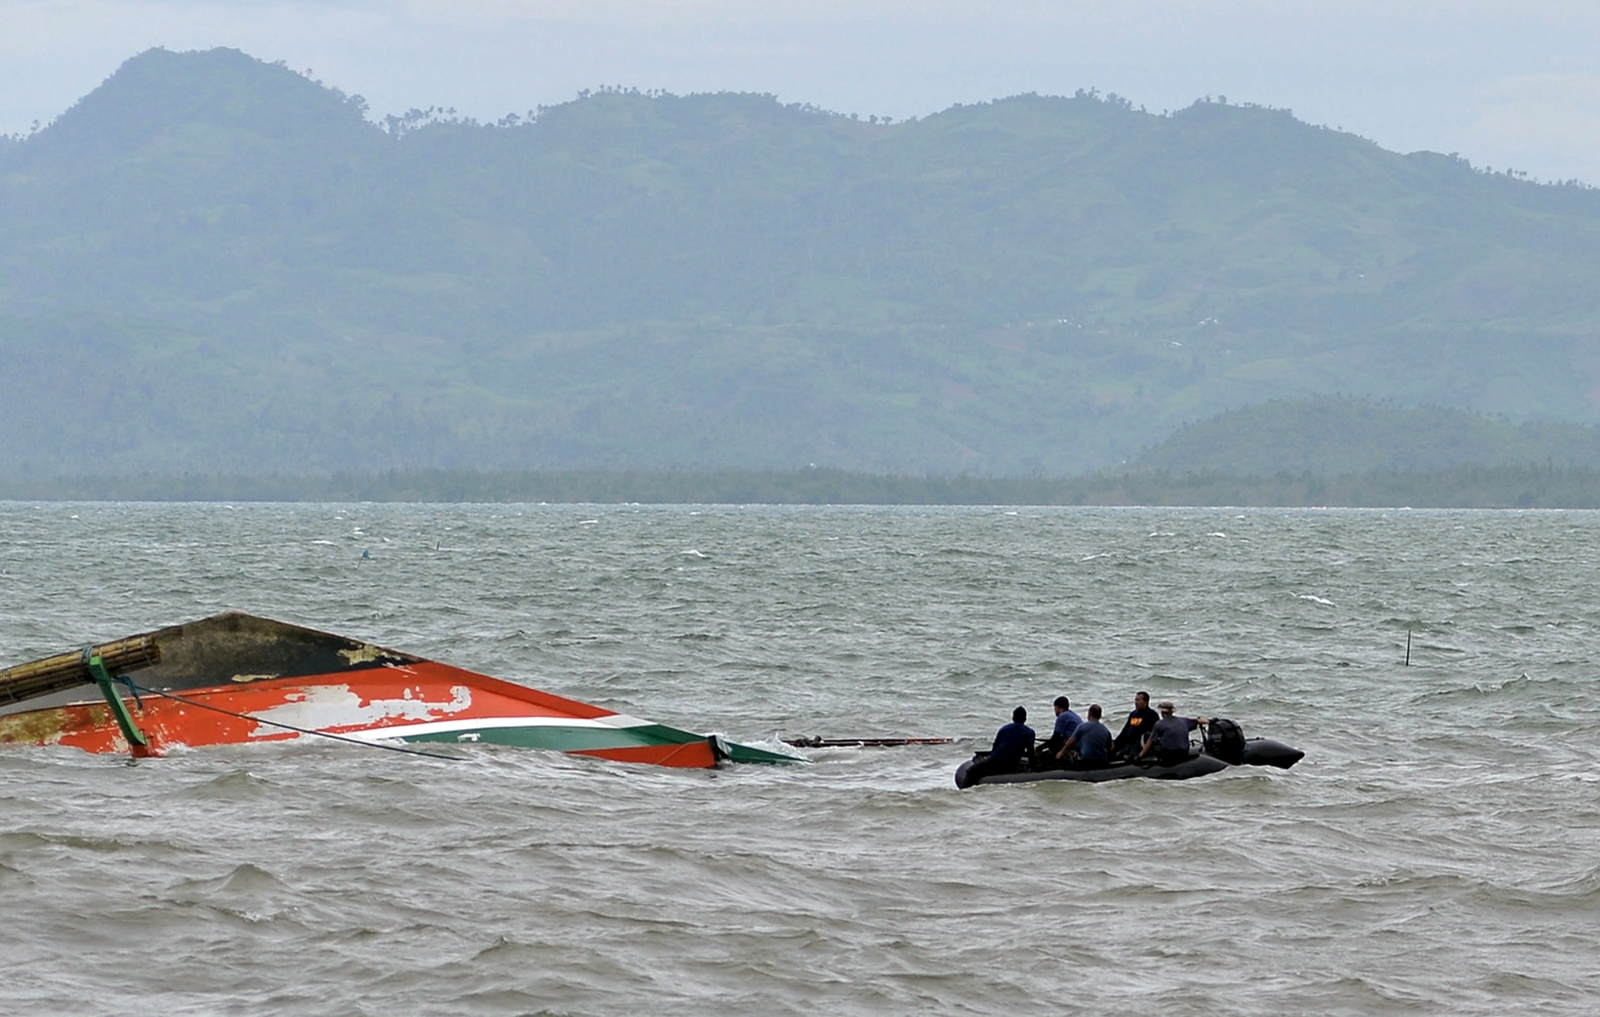 FERRY DISASTER